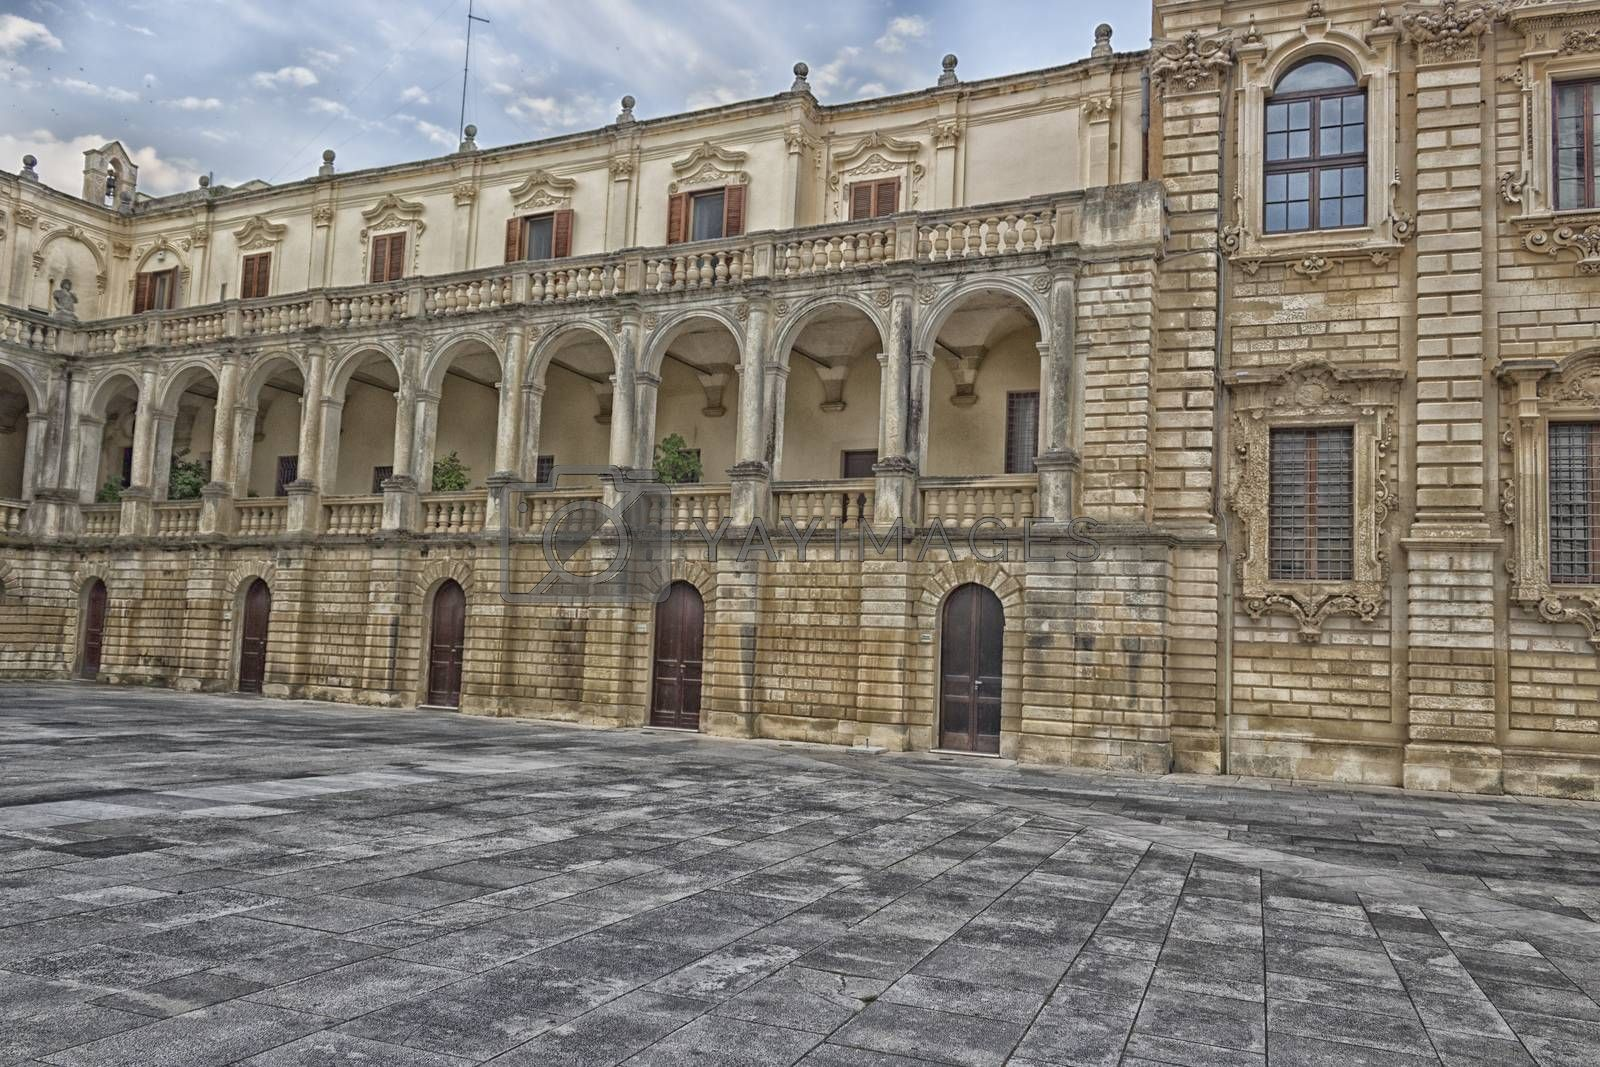 Metropolitan Cathedral of Santa Maria Assunta in the old town of Lecce in the southern Italy (17th century)